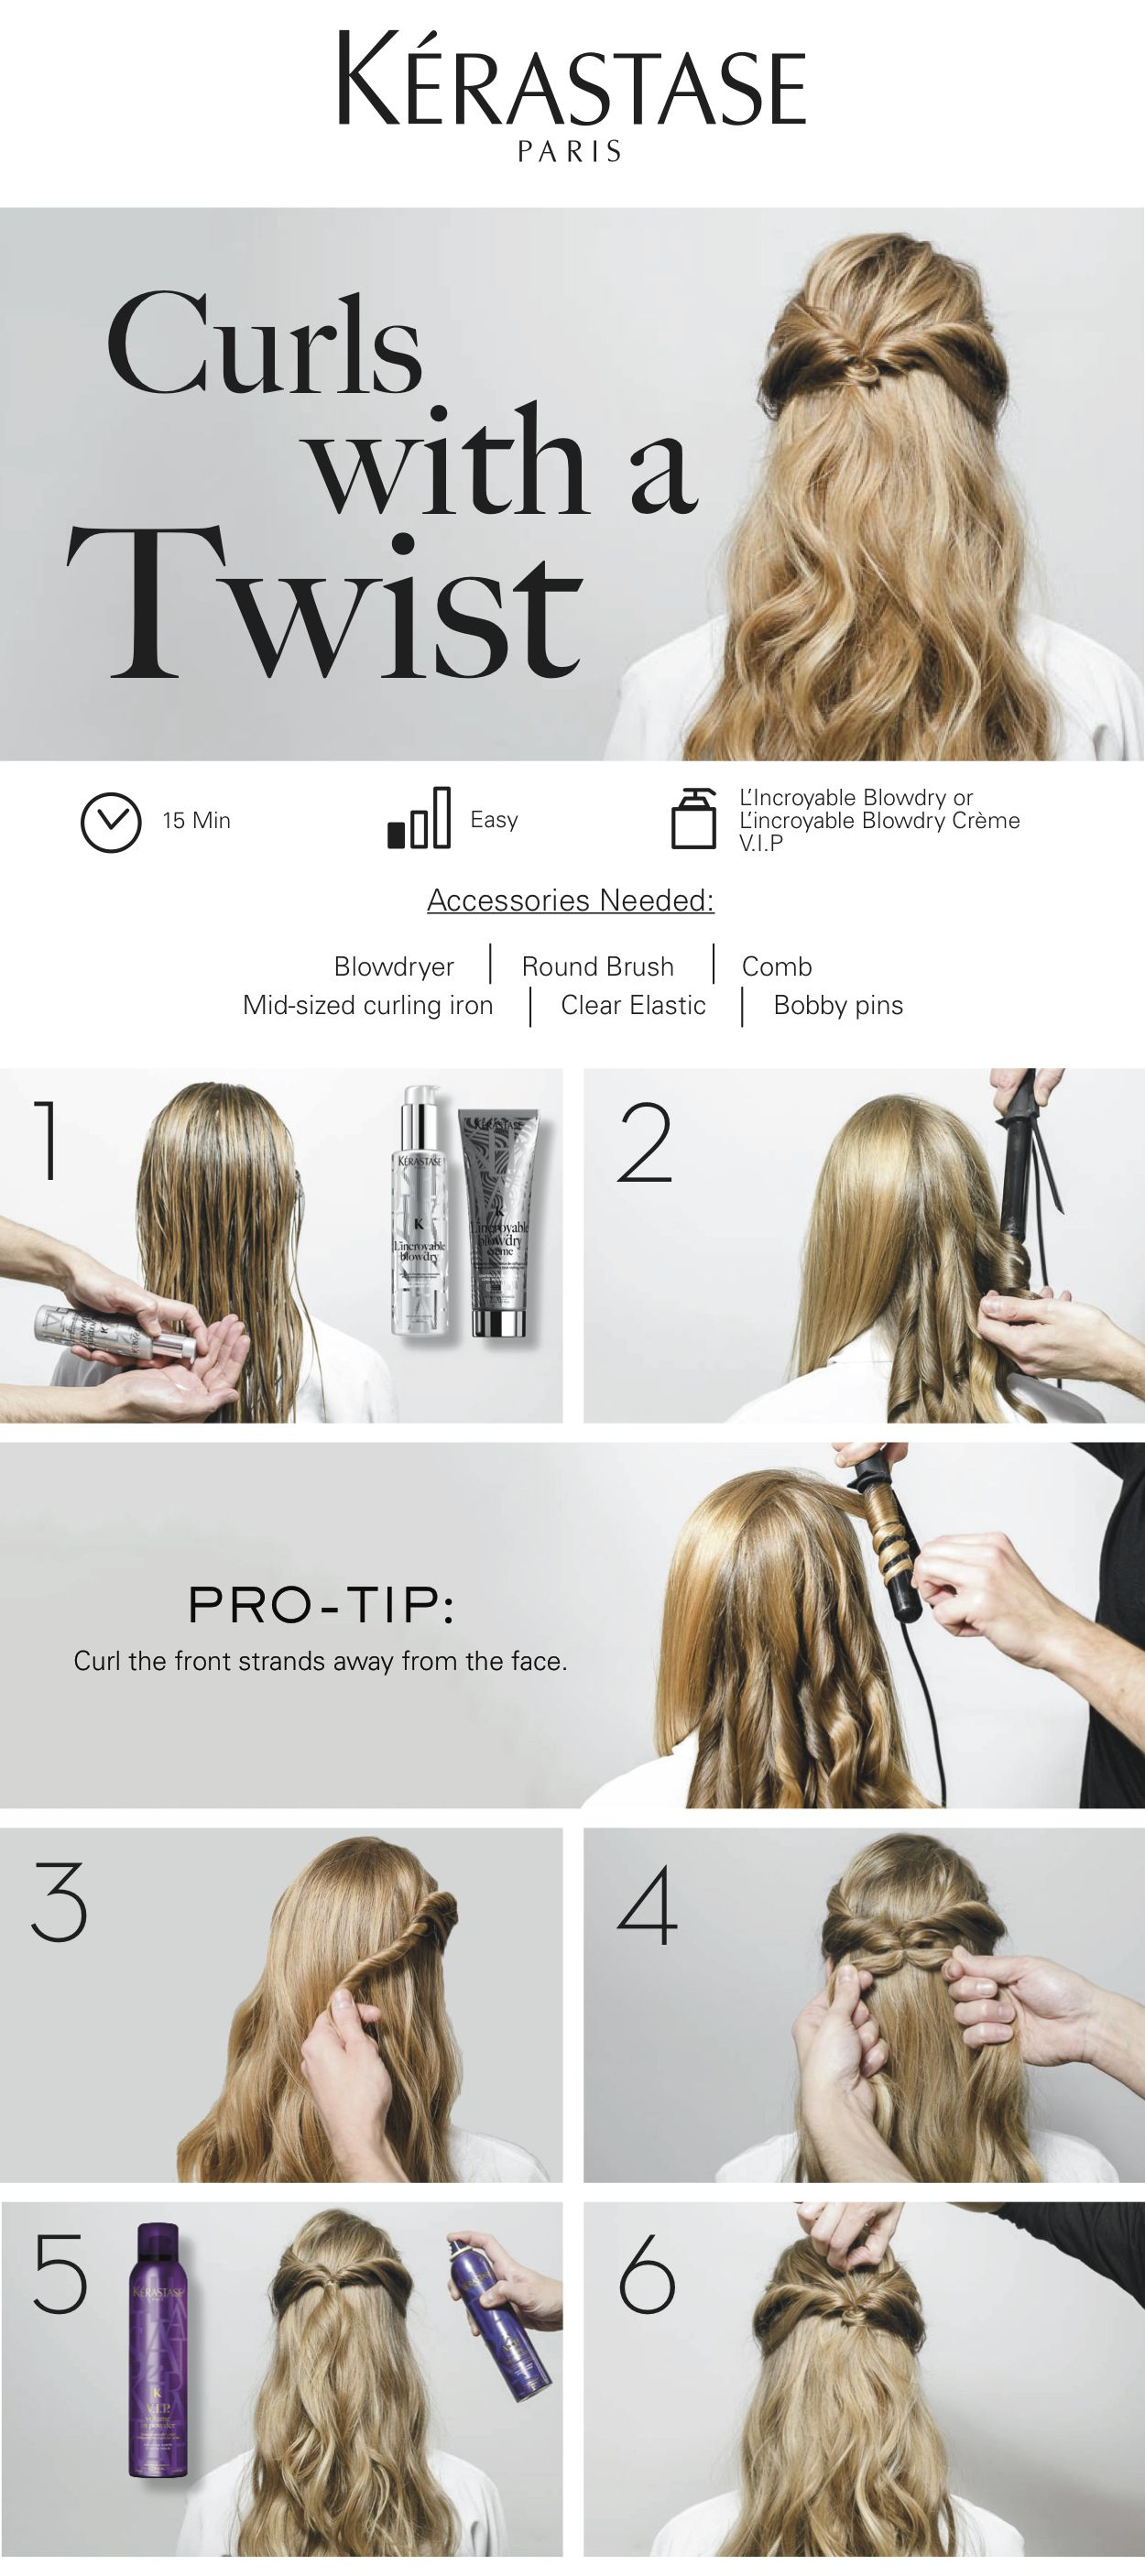 Get The L Incroyable Look Follow Our Step By Step Hair Tutorial To Create Curls With A Twist In Just 6 Simp Half Up Hair Hair Tutorial Bridesmaid Hair Half Up